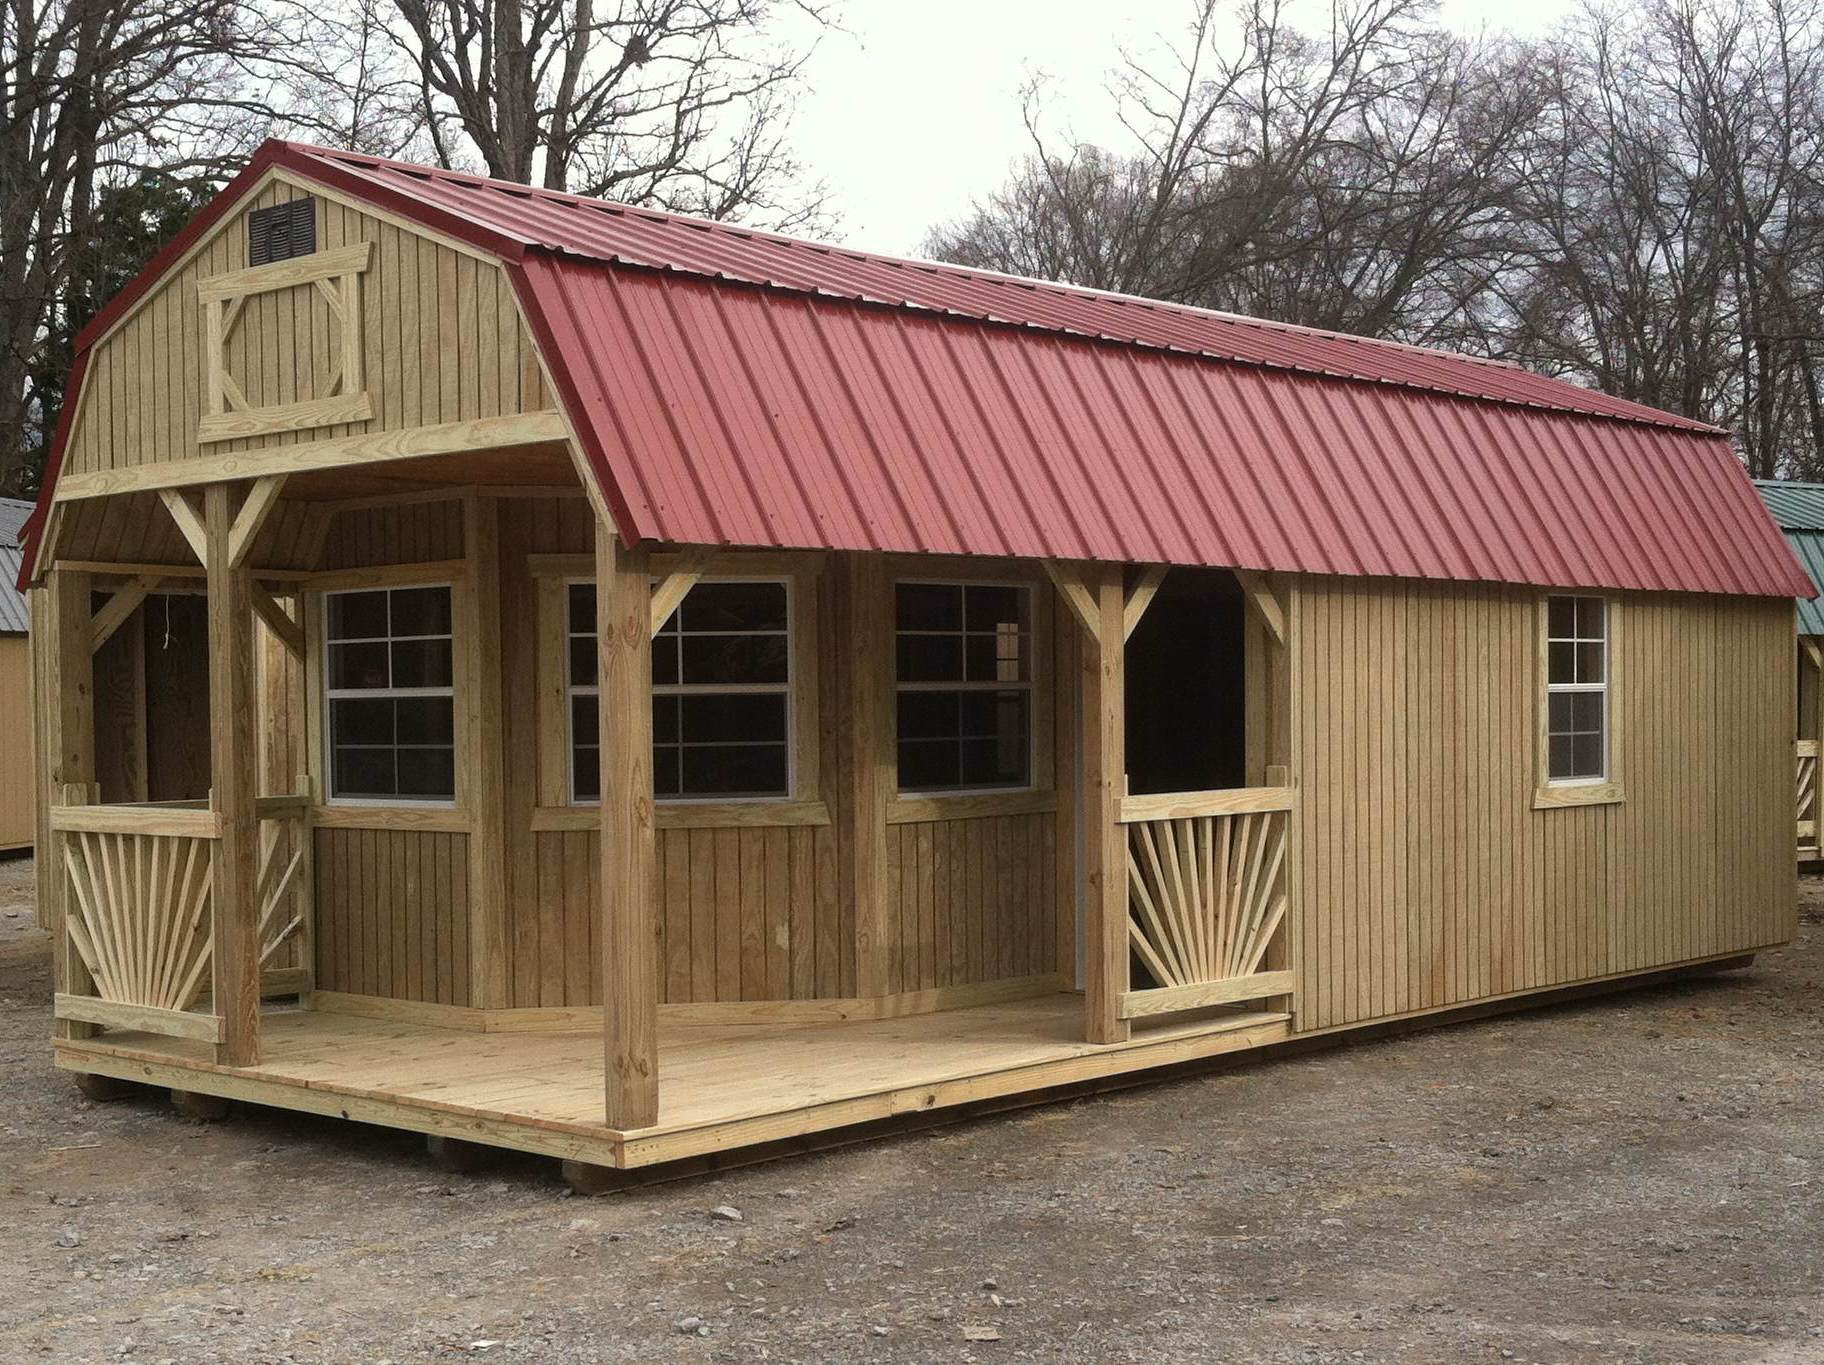 Hickory Sheds West | Cabins | Cabins n small homes ...